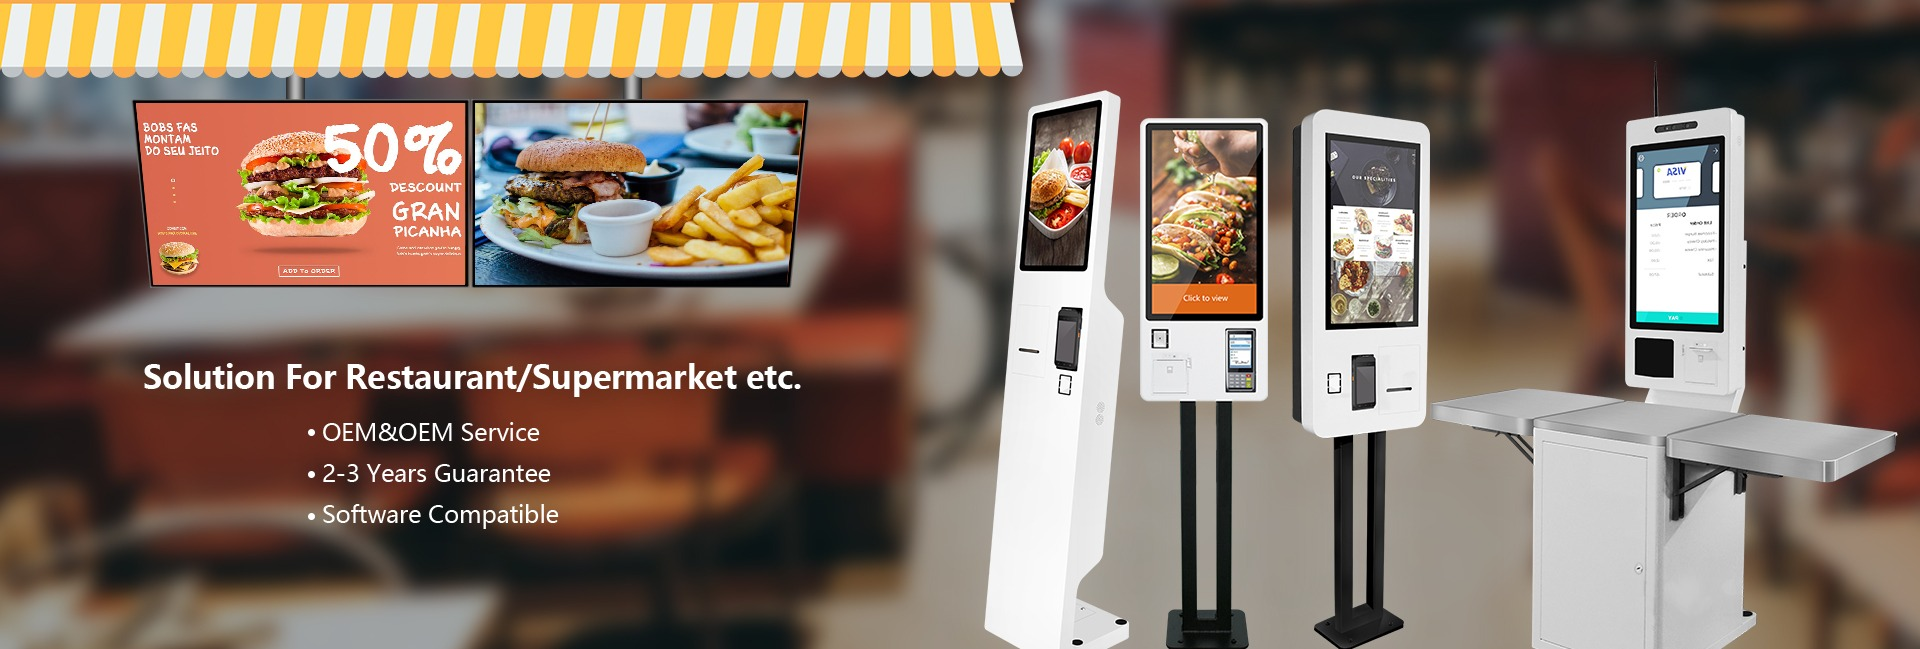 how to get a pdq machine Digital Screens and self order kiosk